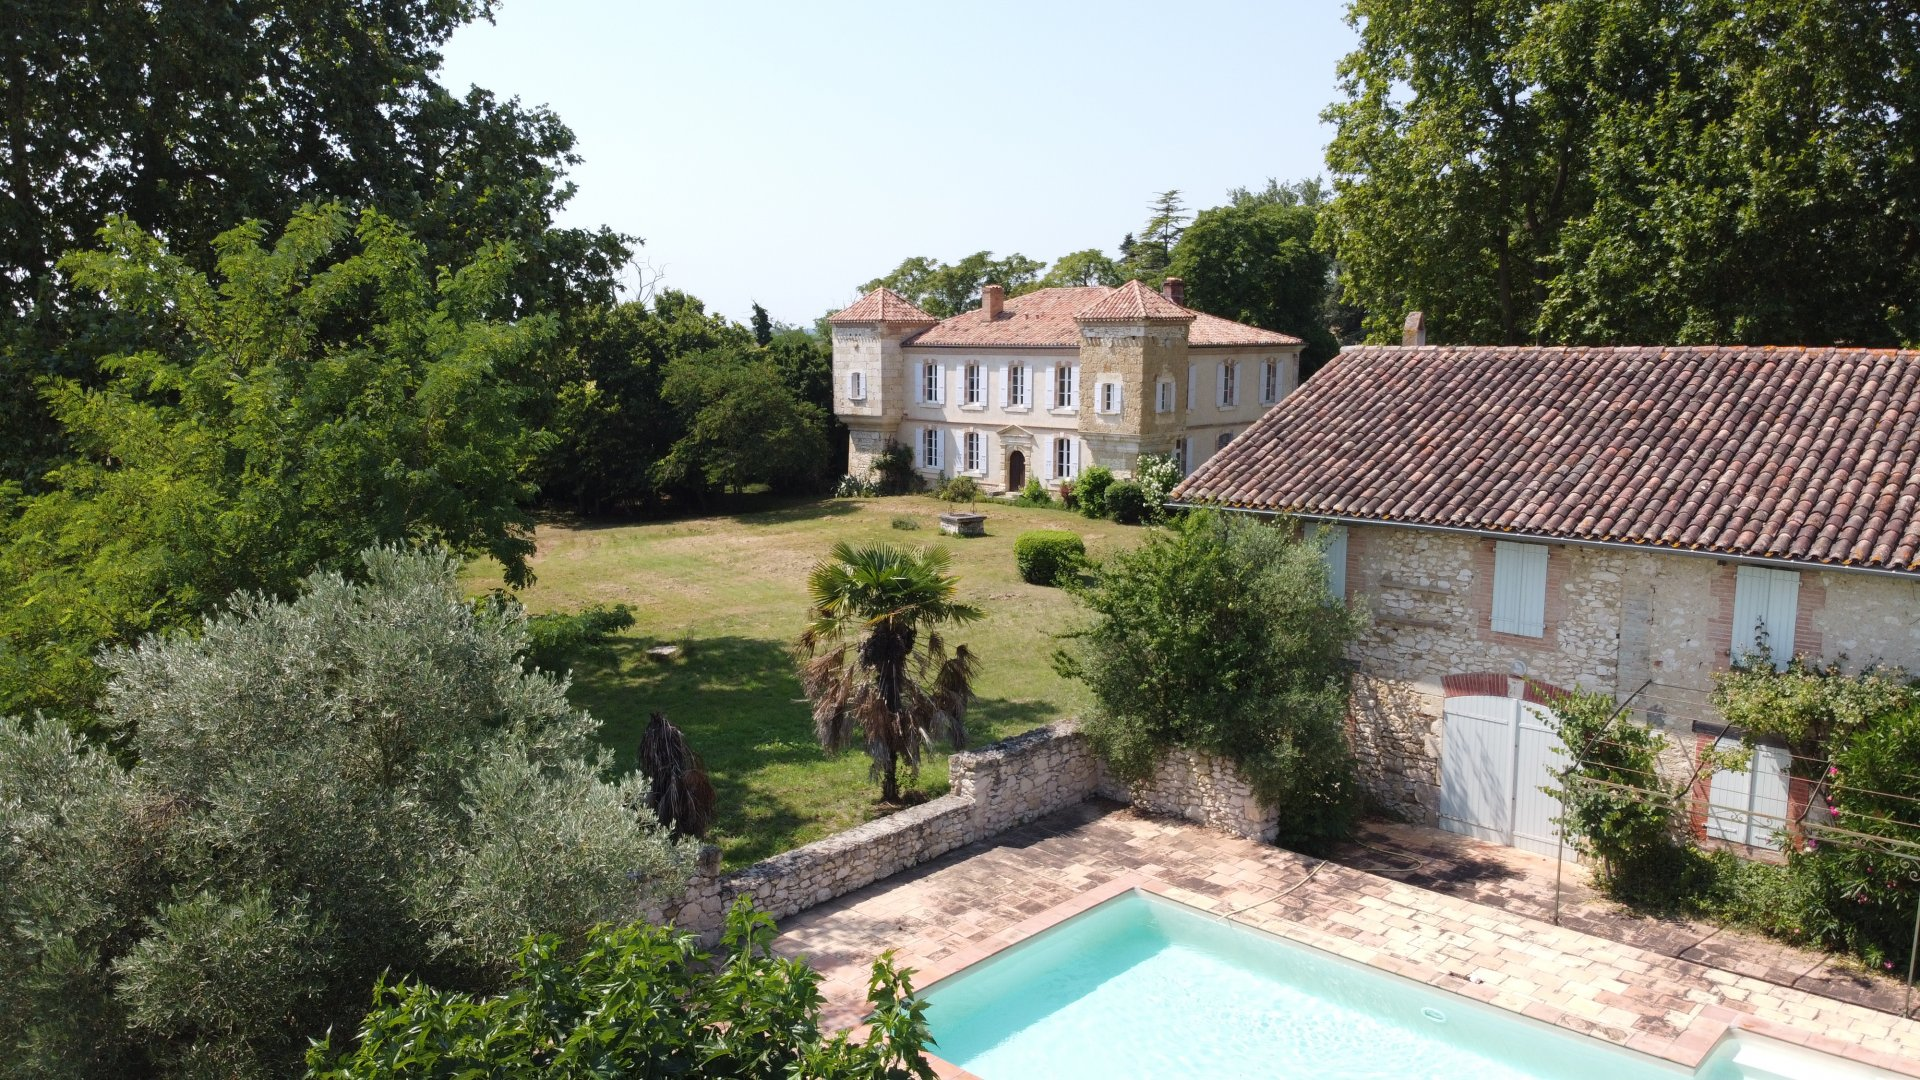 Charismatic small chateau in complete privacy